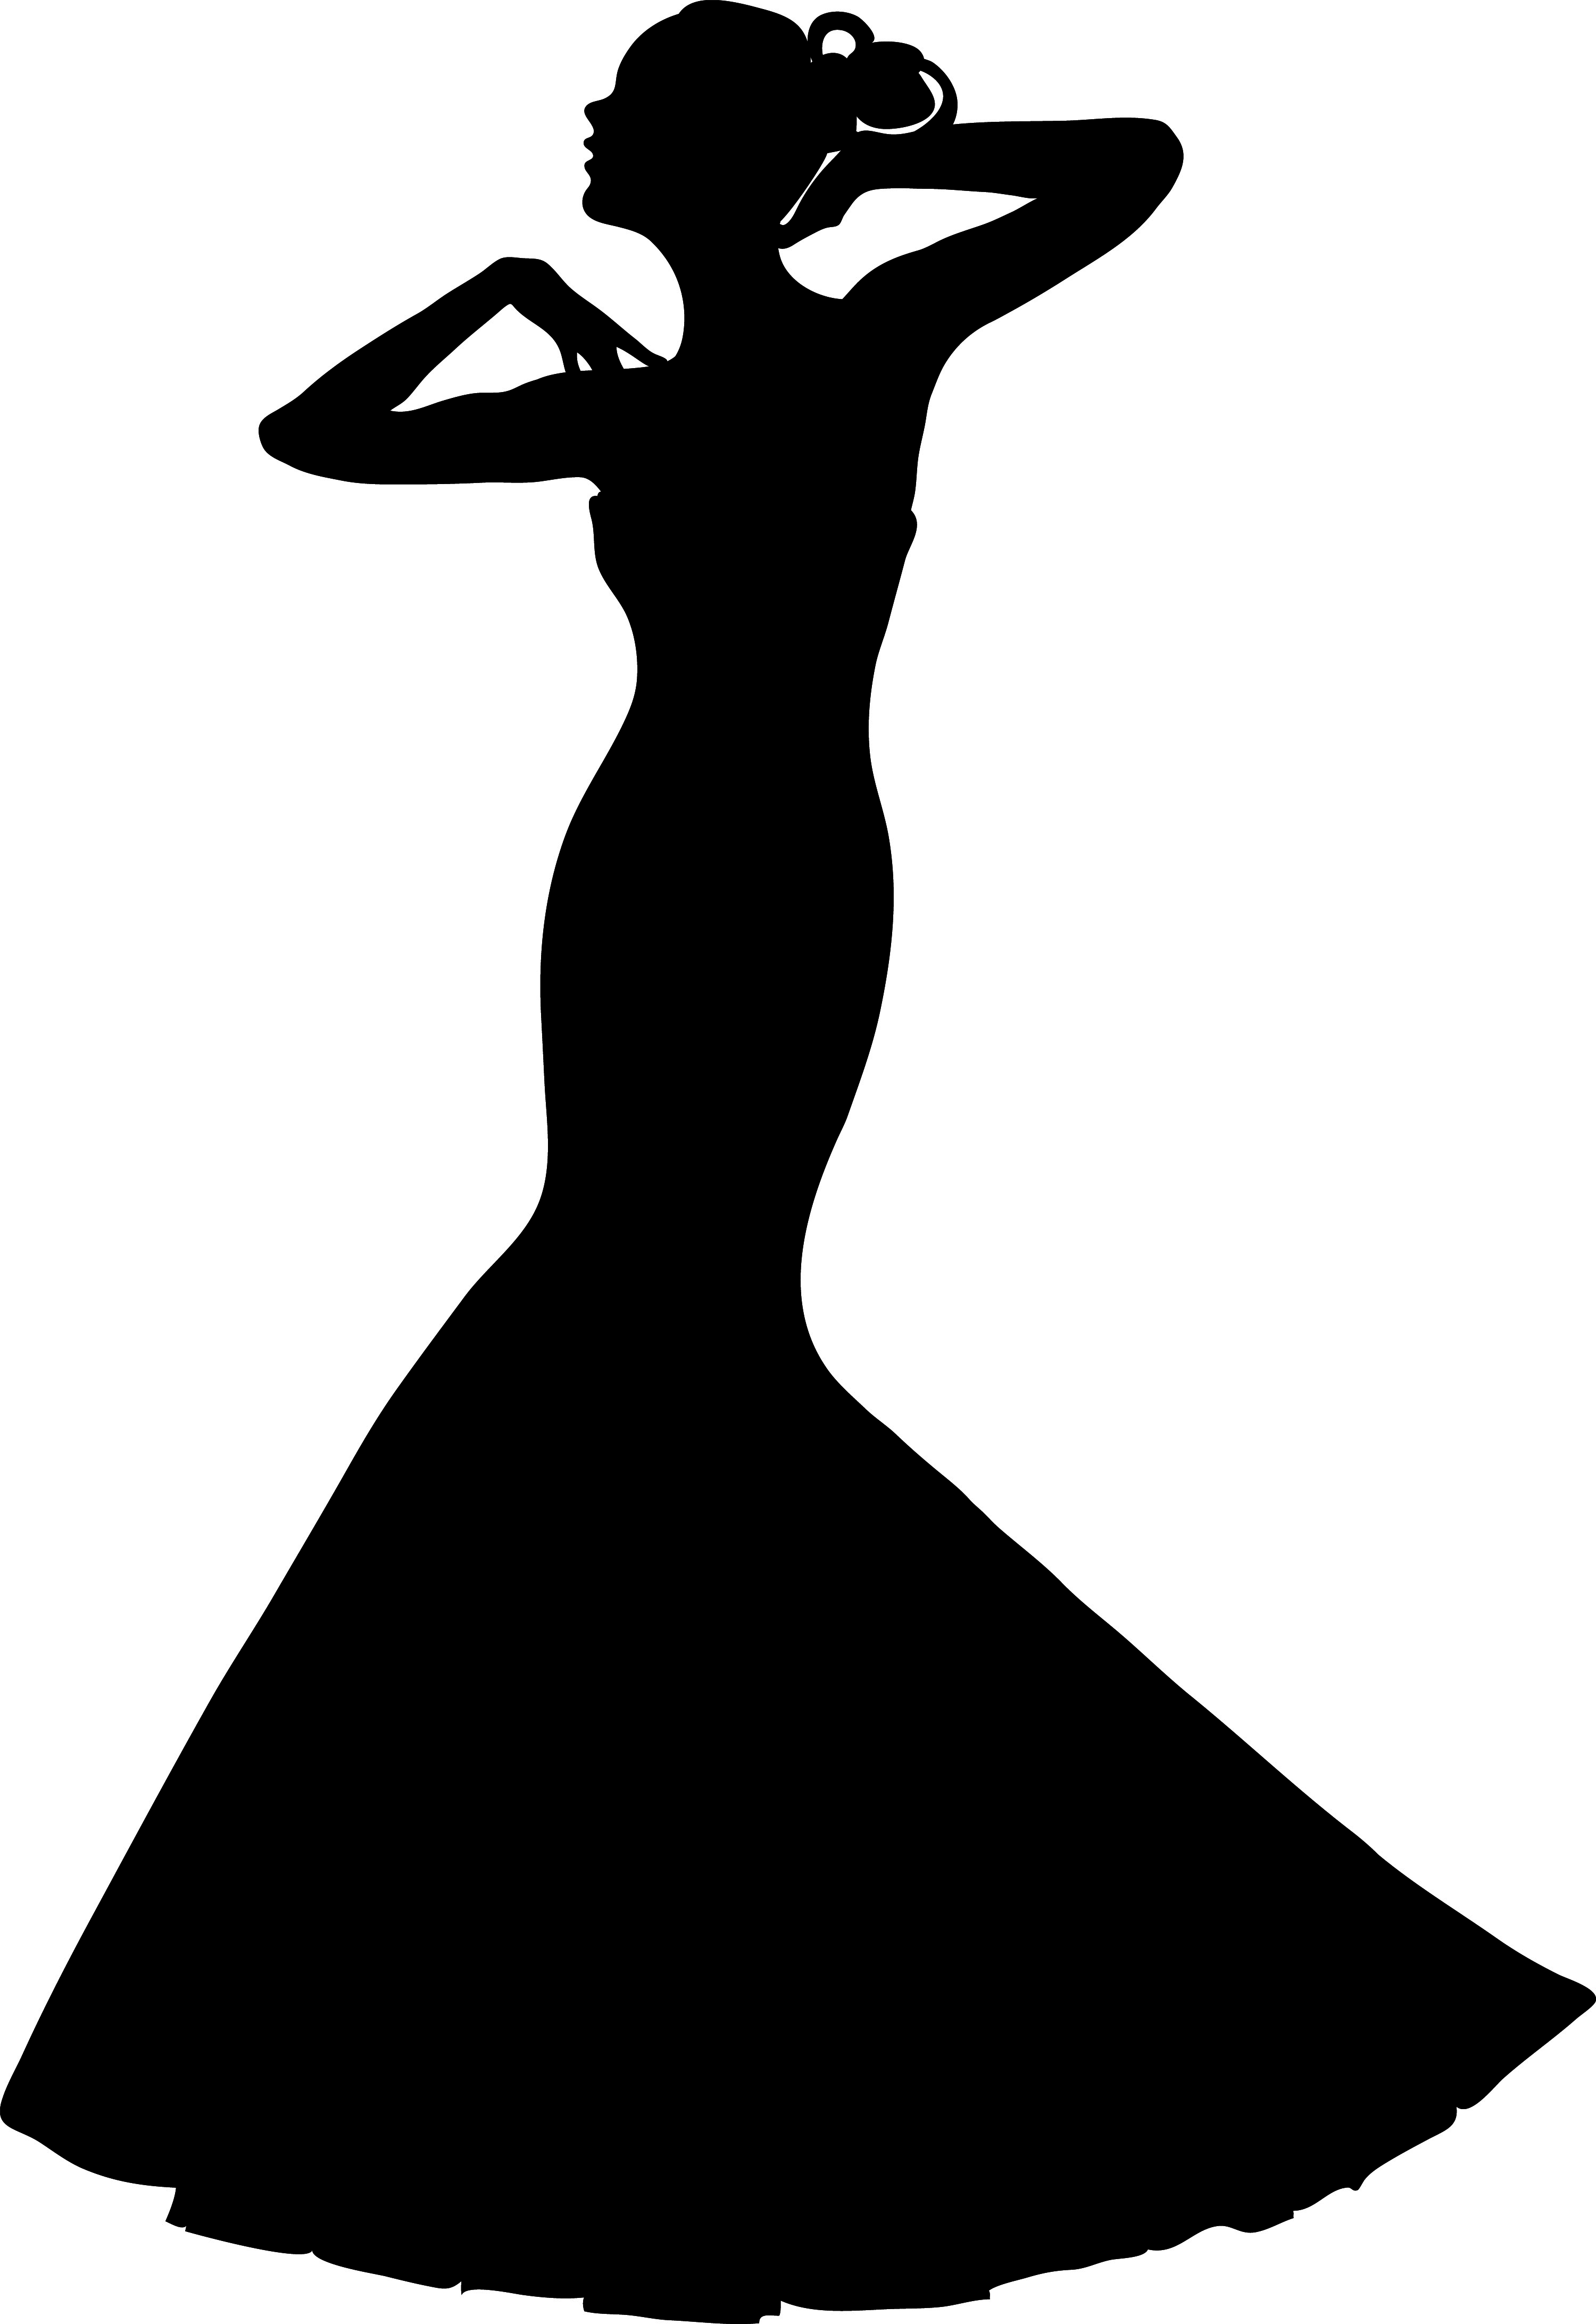 Gown clipart silhouette Silhouette Clipart Evening dress collection